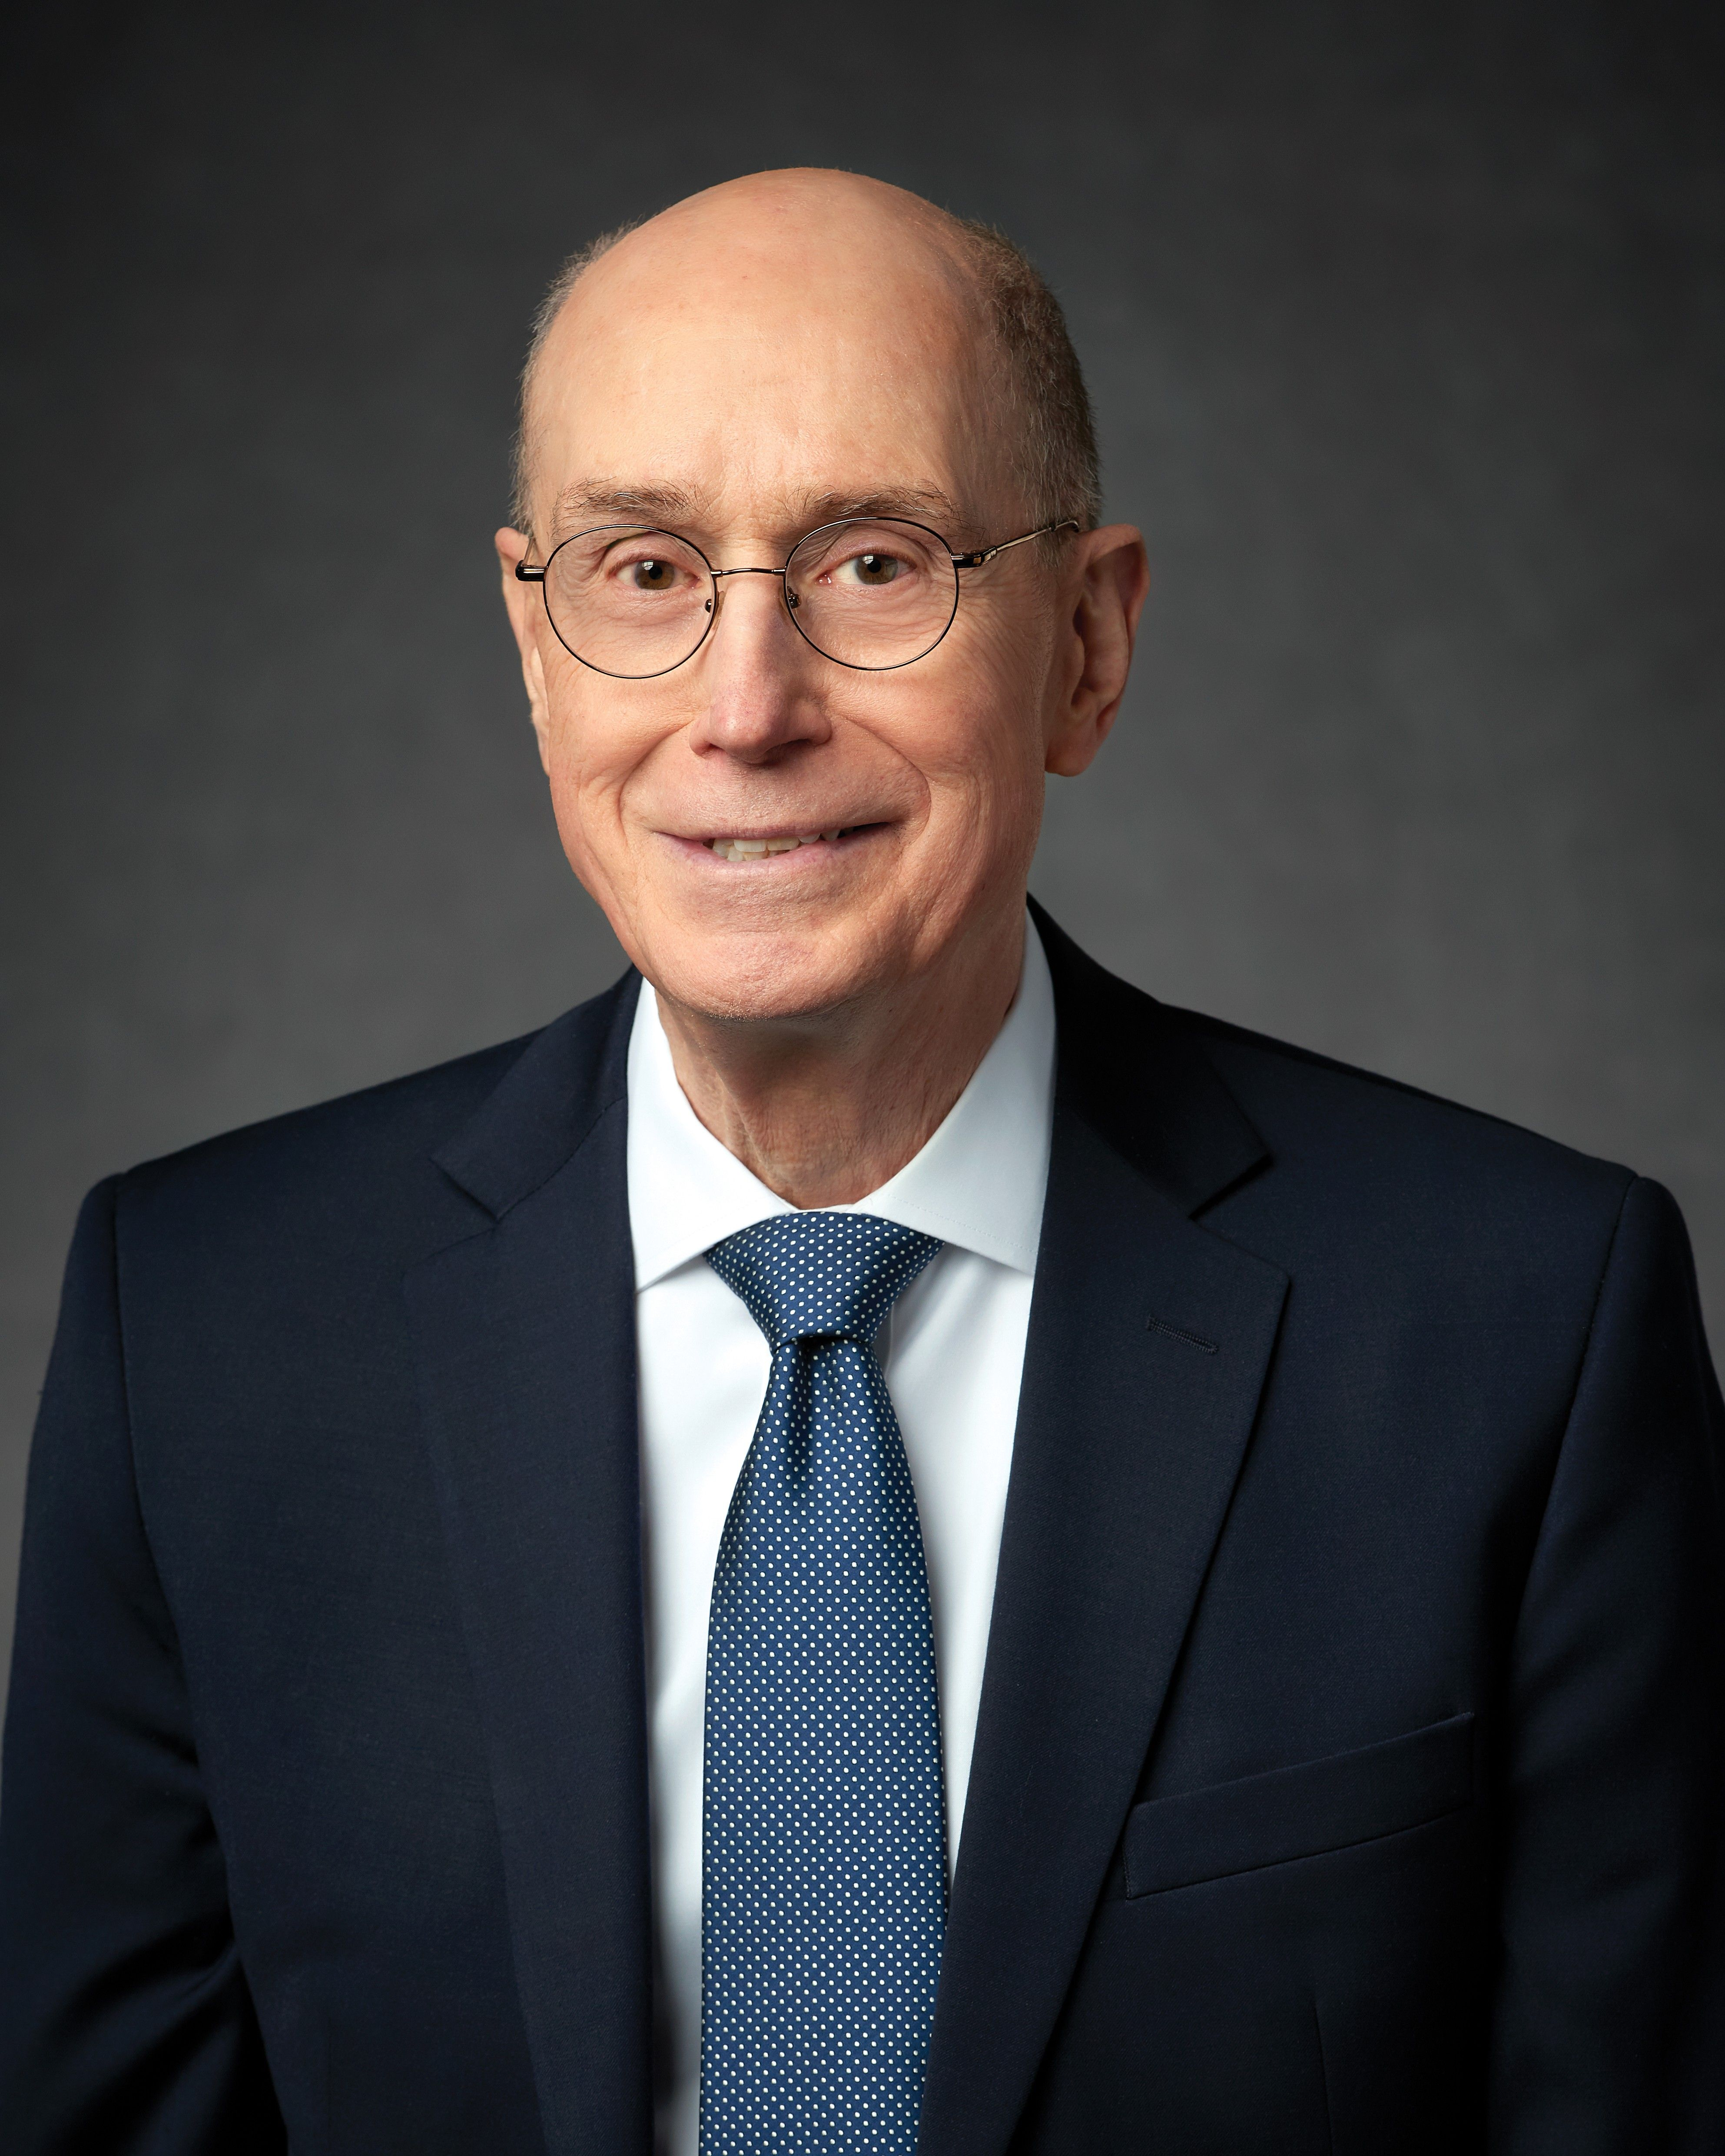 The official portrait of Henry B. Eyring.